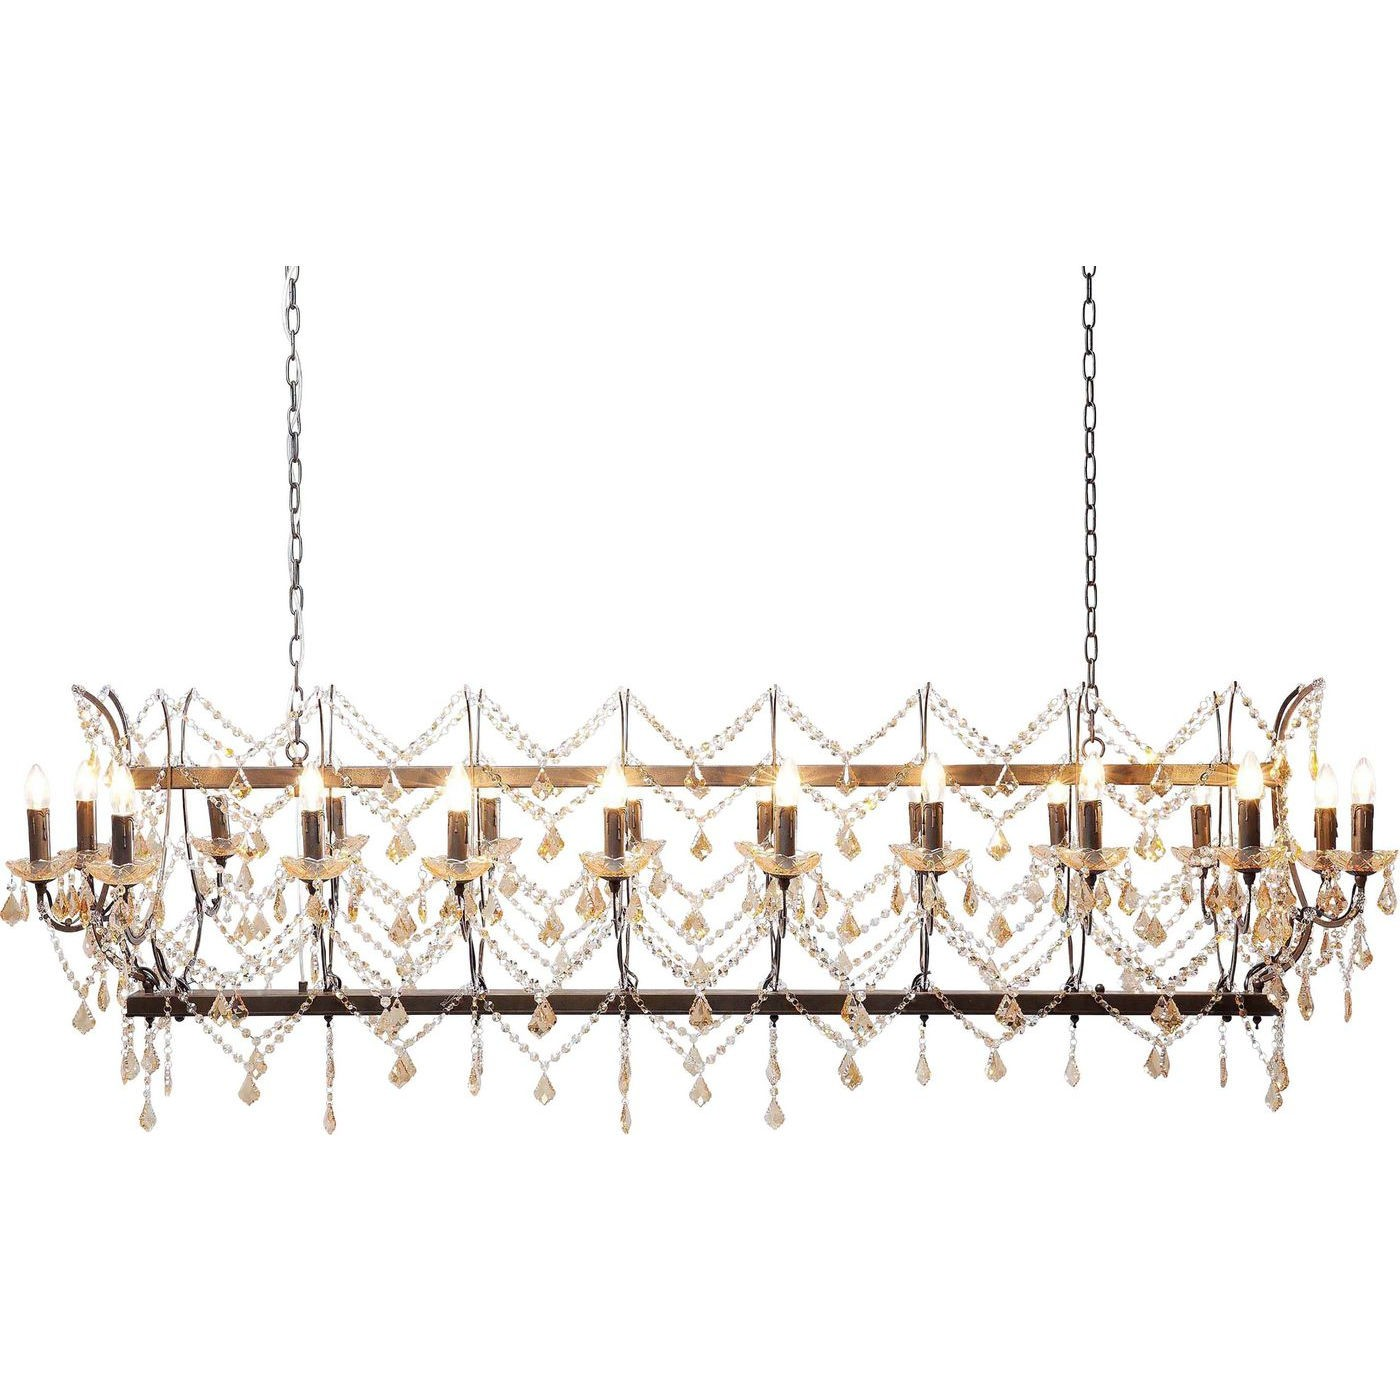 Loftslampe Chateau Crystal Rusty Deluxe